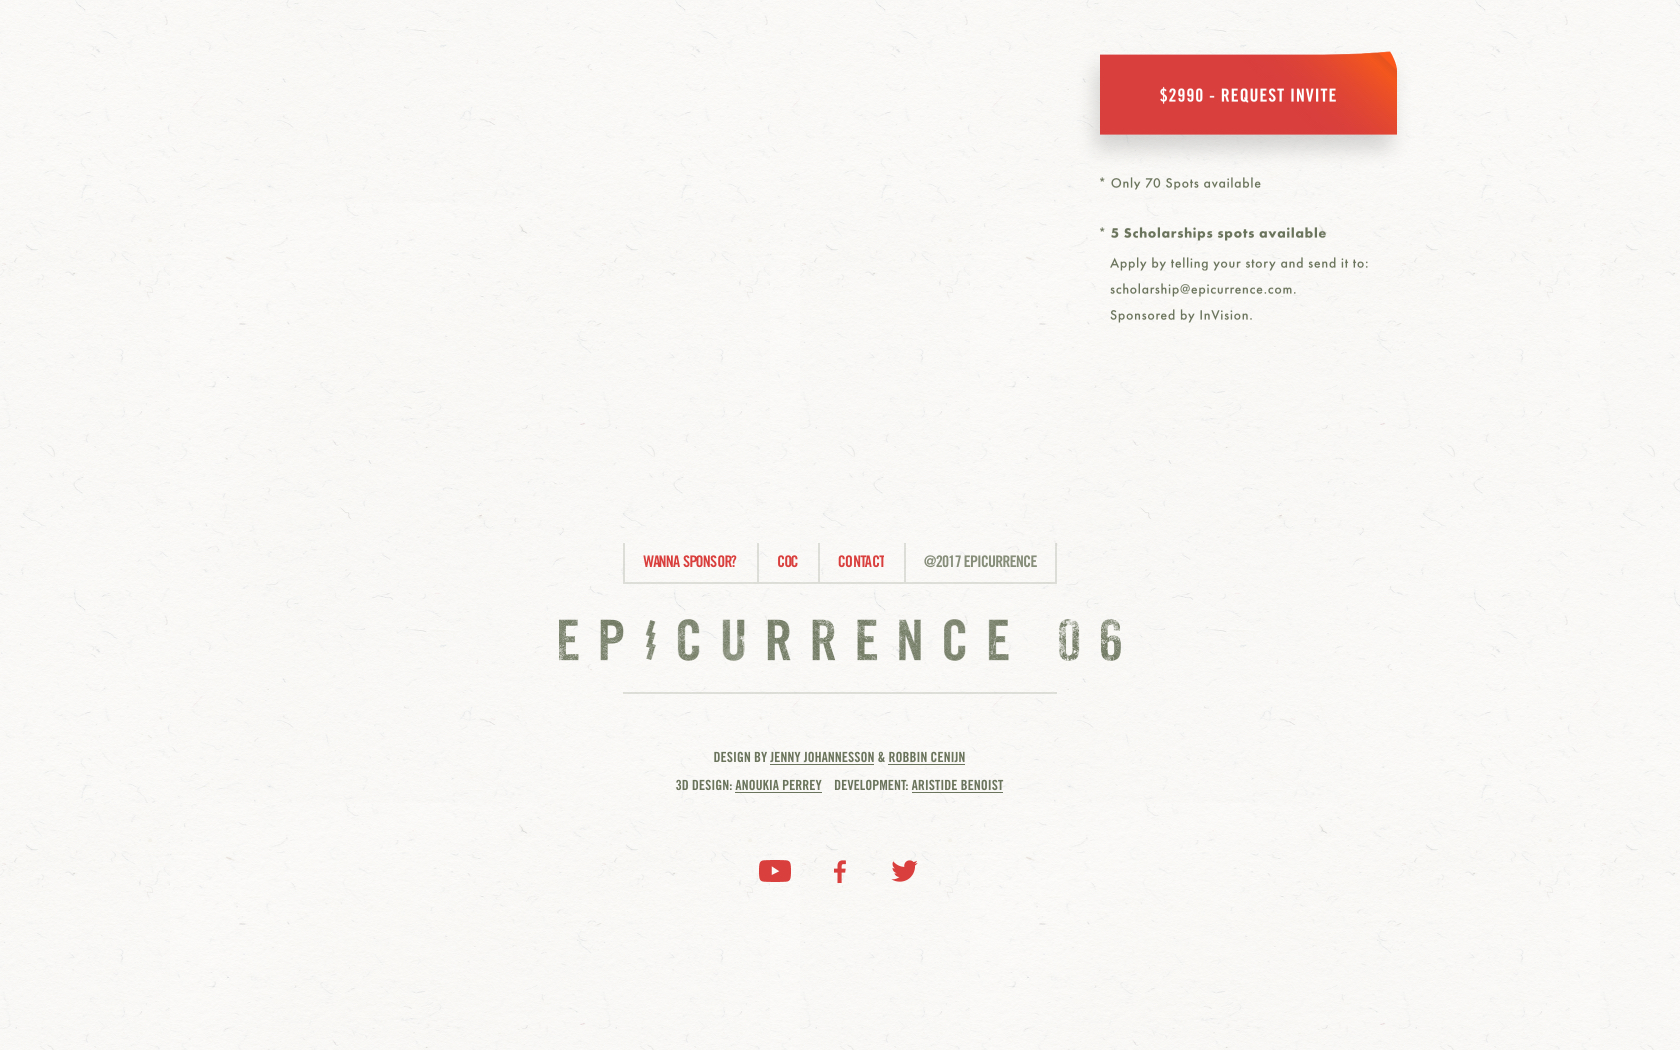 Epicurrence 11